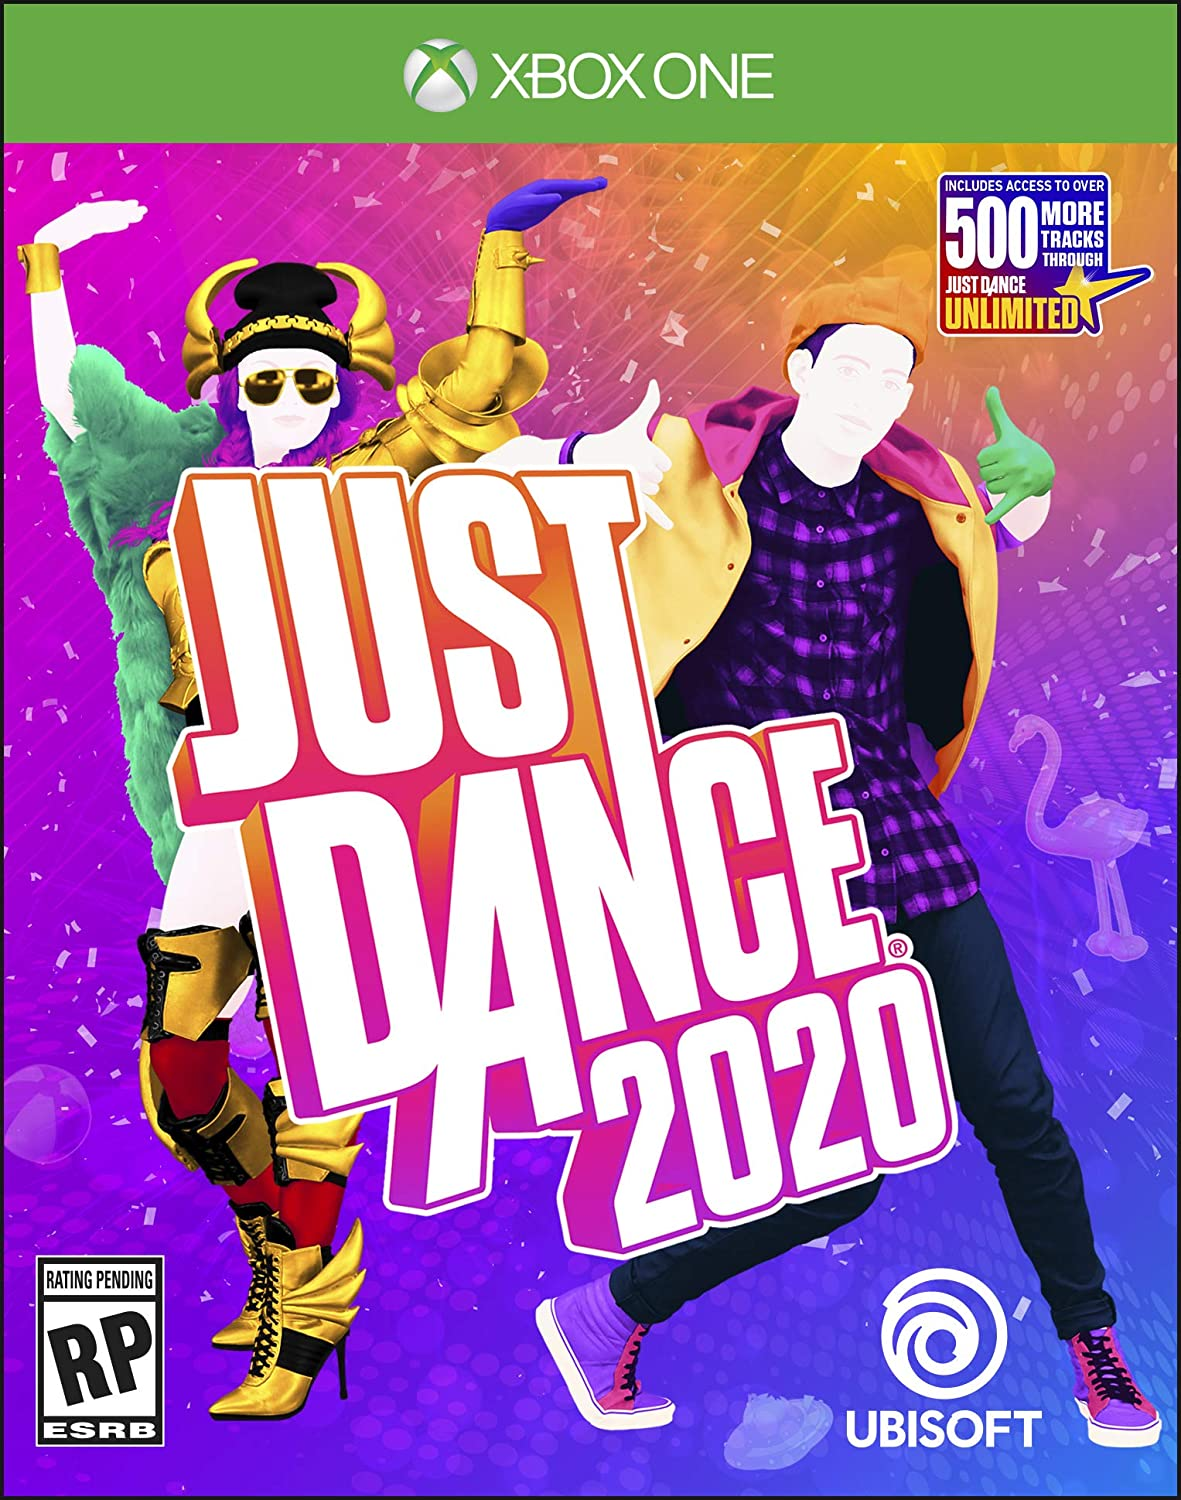 Xbox Free Games November 2020.Amazon Com Just Dance 2020 Xbox One Standard Edition